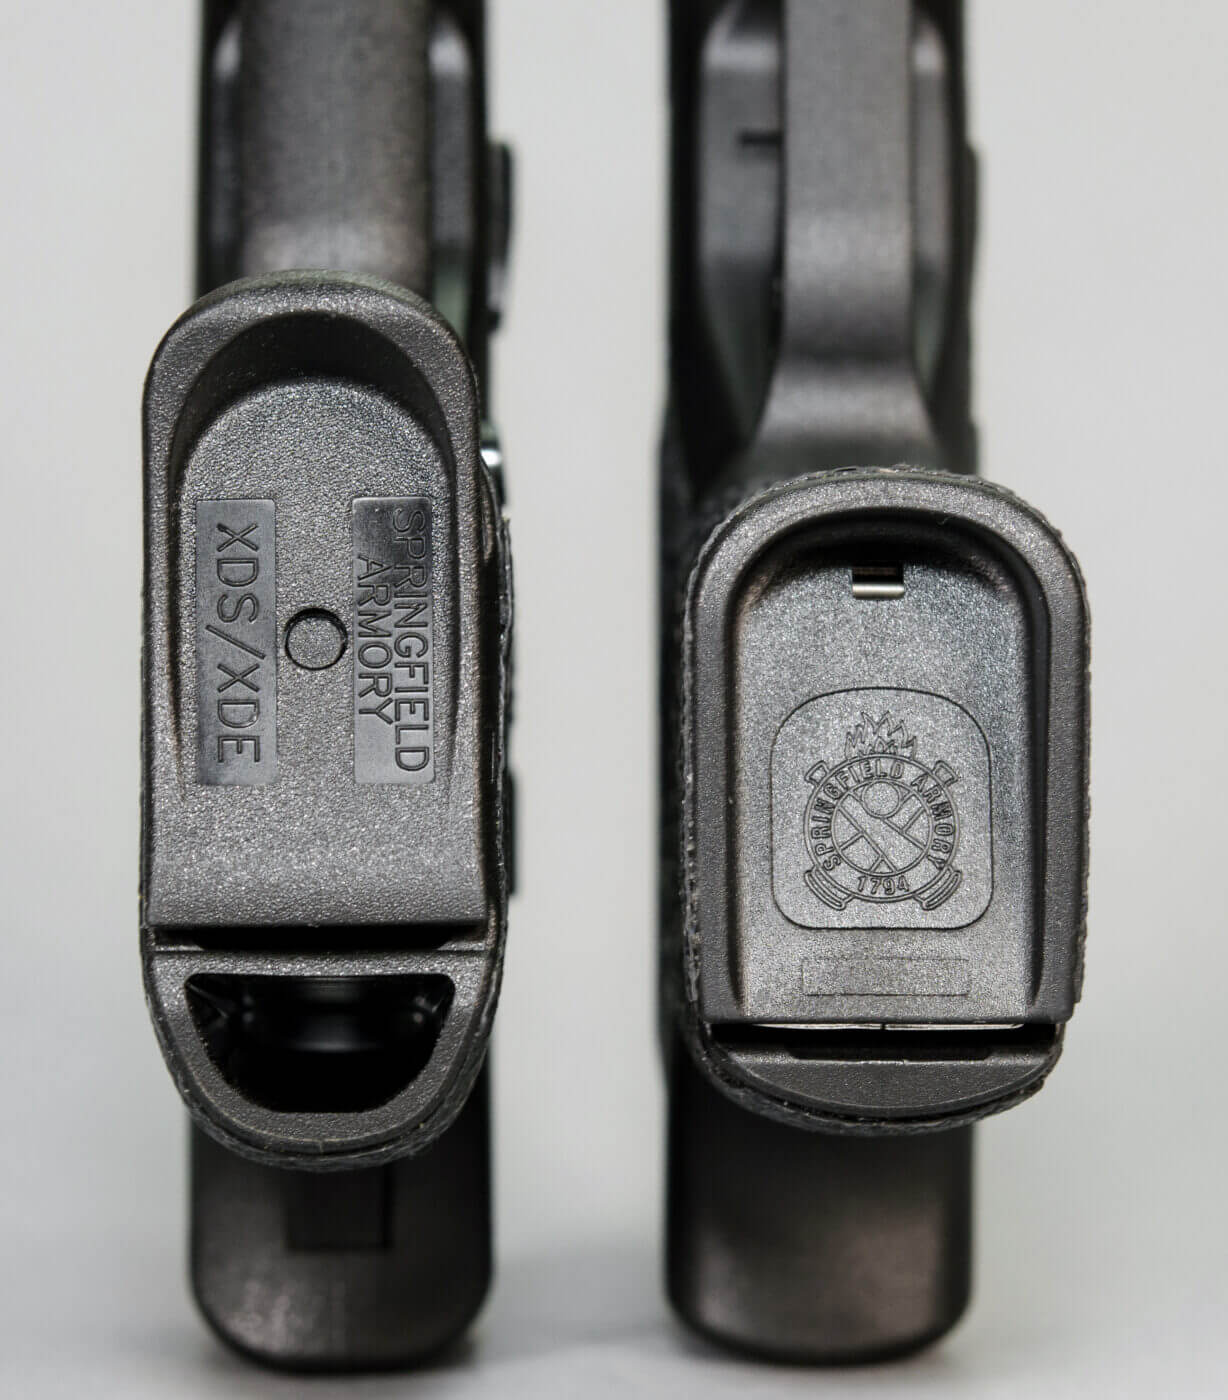 Different magazines for two handguns